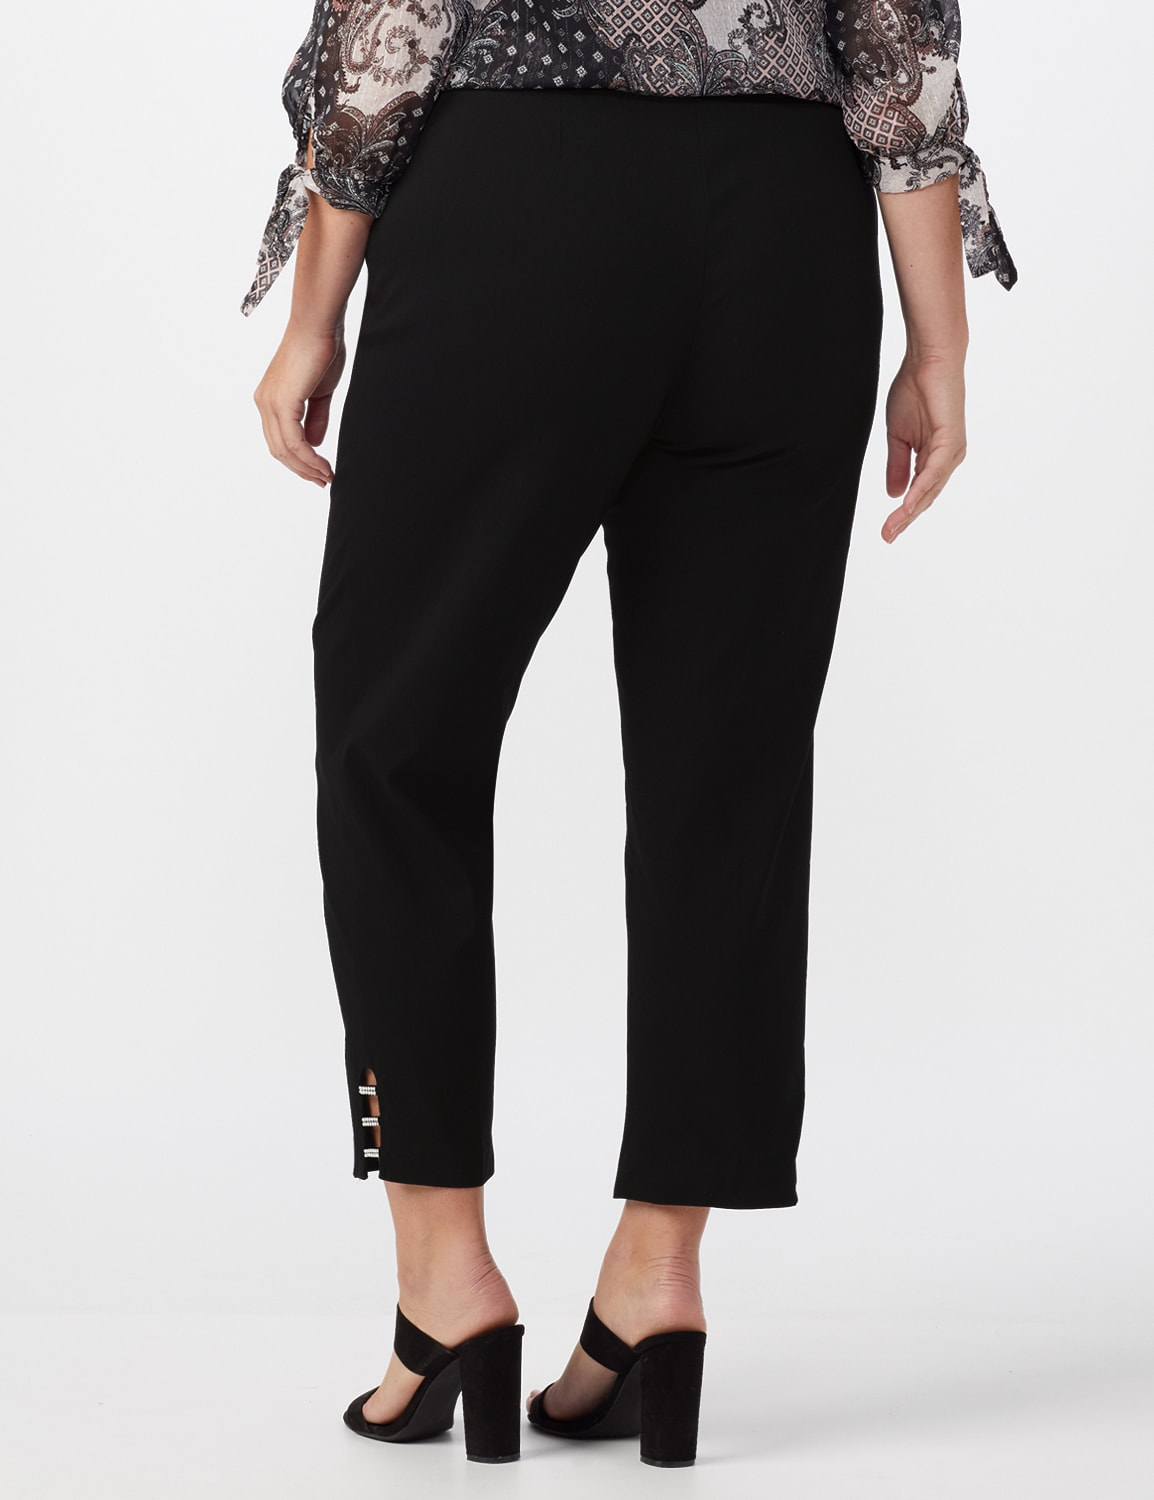 Pull On Crop Ankle Pants with Novelty Rhinestone Trim at Hem - Black - Back